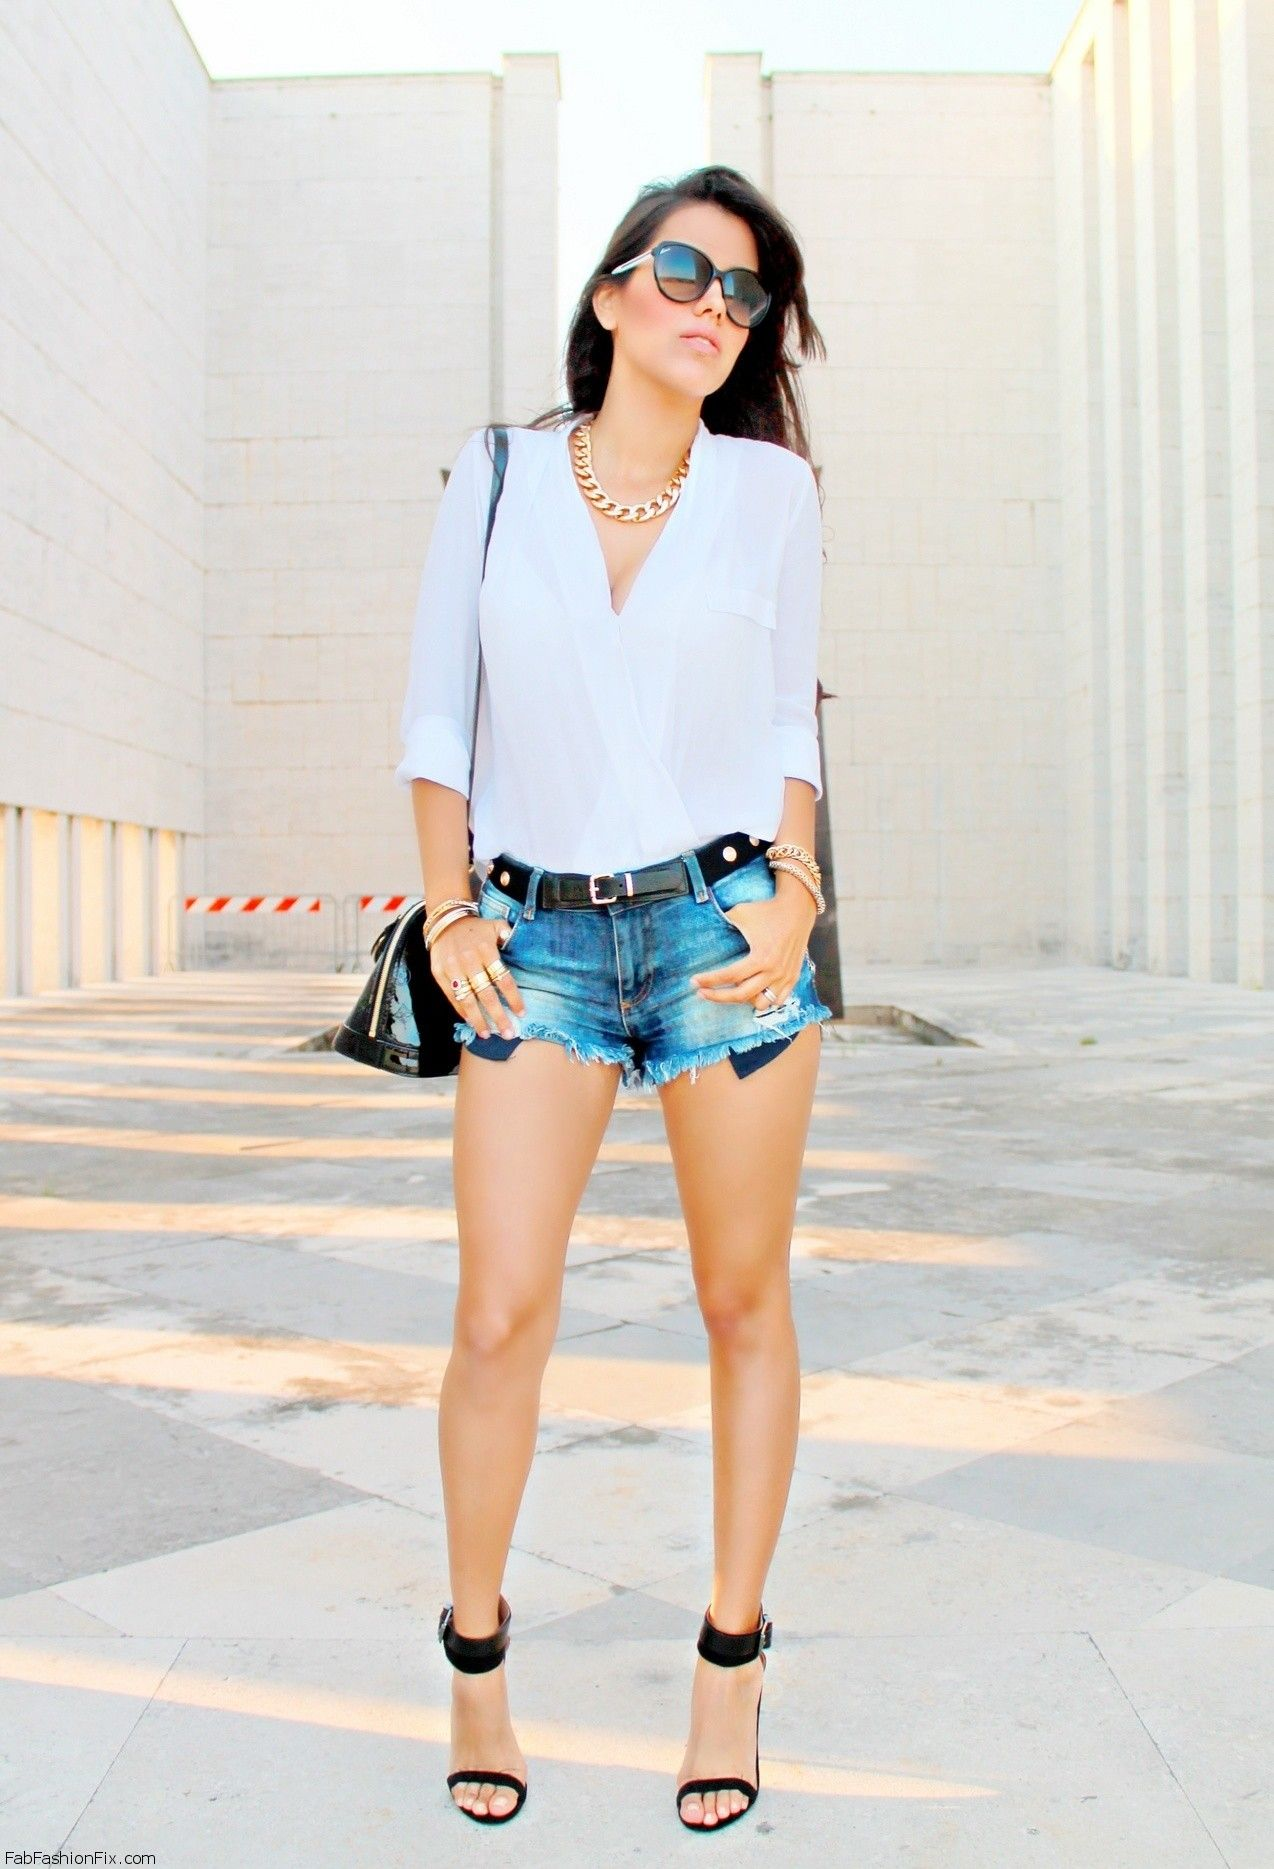 zara-cinte-louis-vuitton-shorts